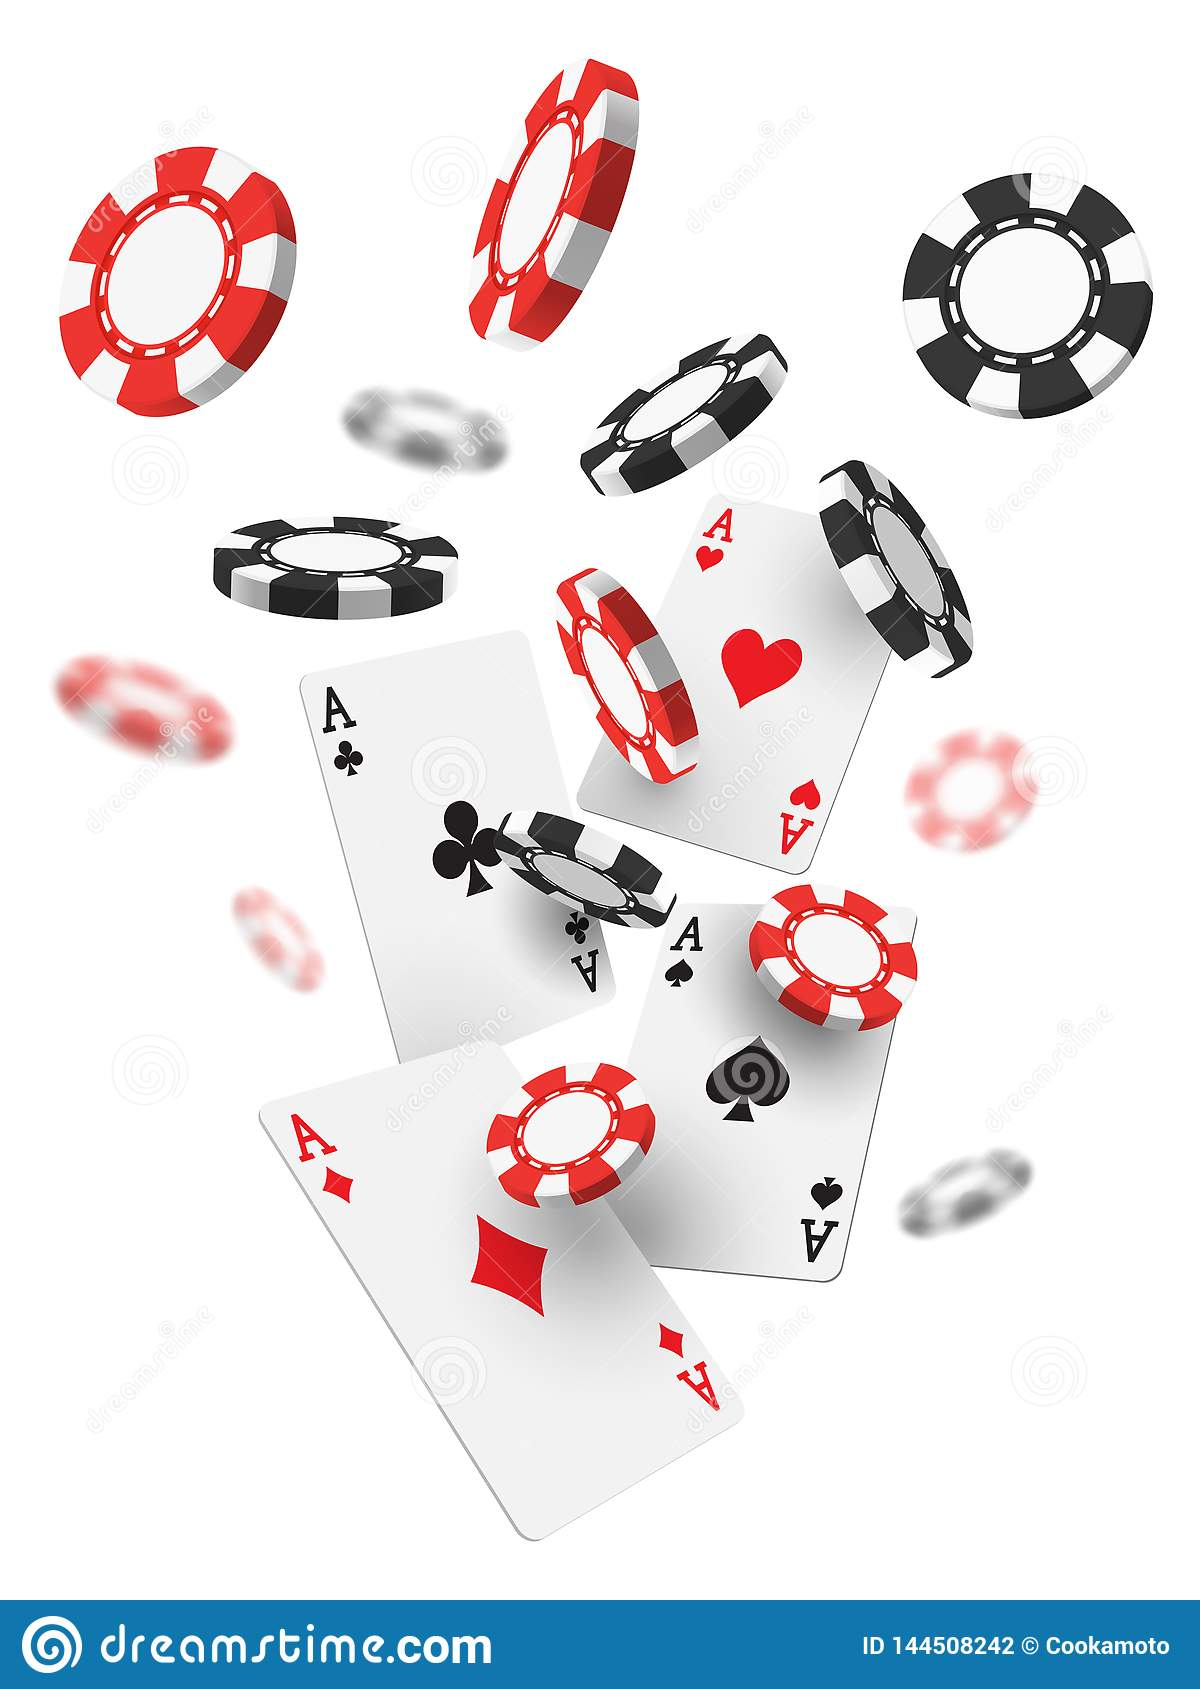 Flying realistic or 3d casino chips and aces cards